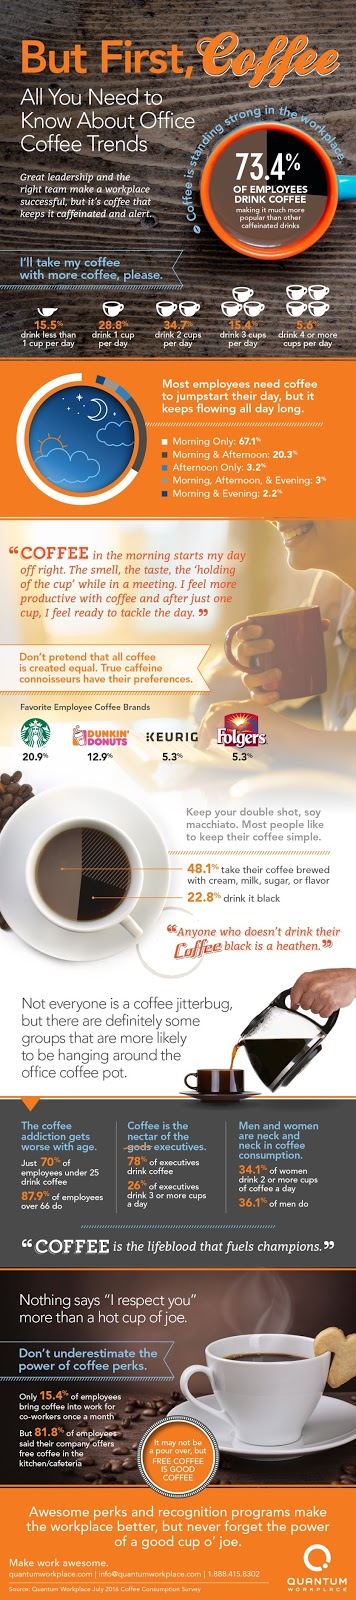 But First, Coffee - All You Need To Know About Office Trends Infographic